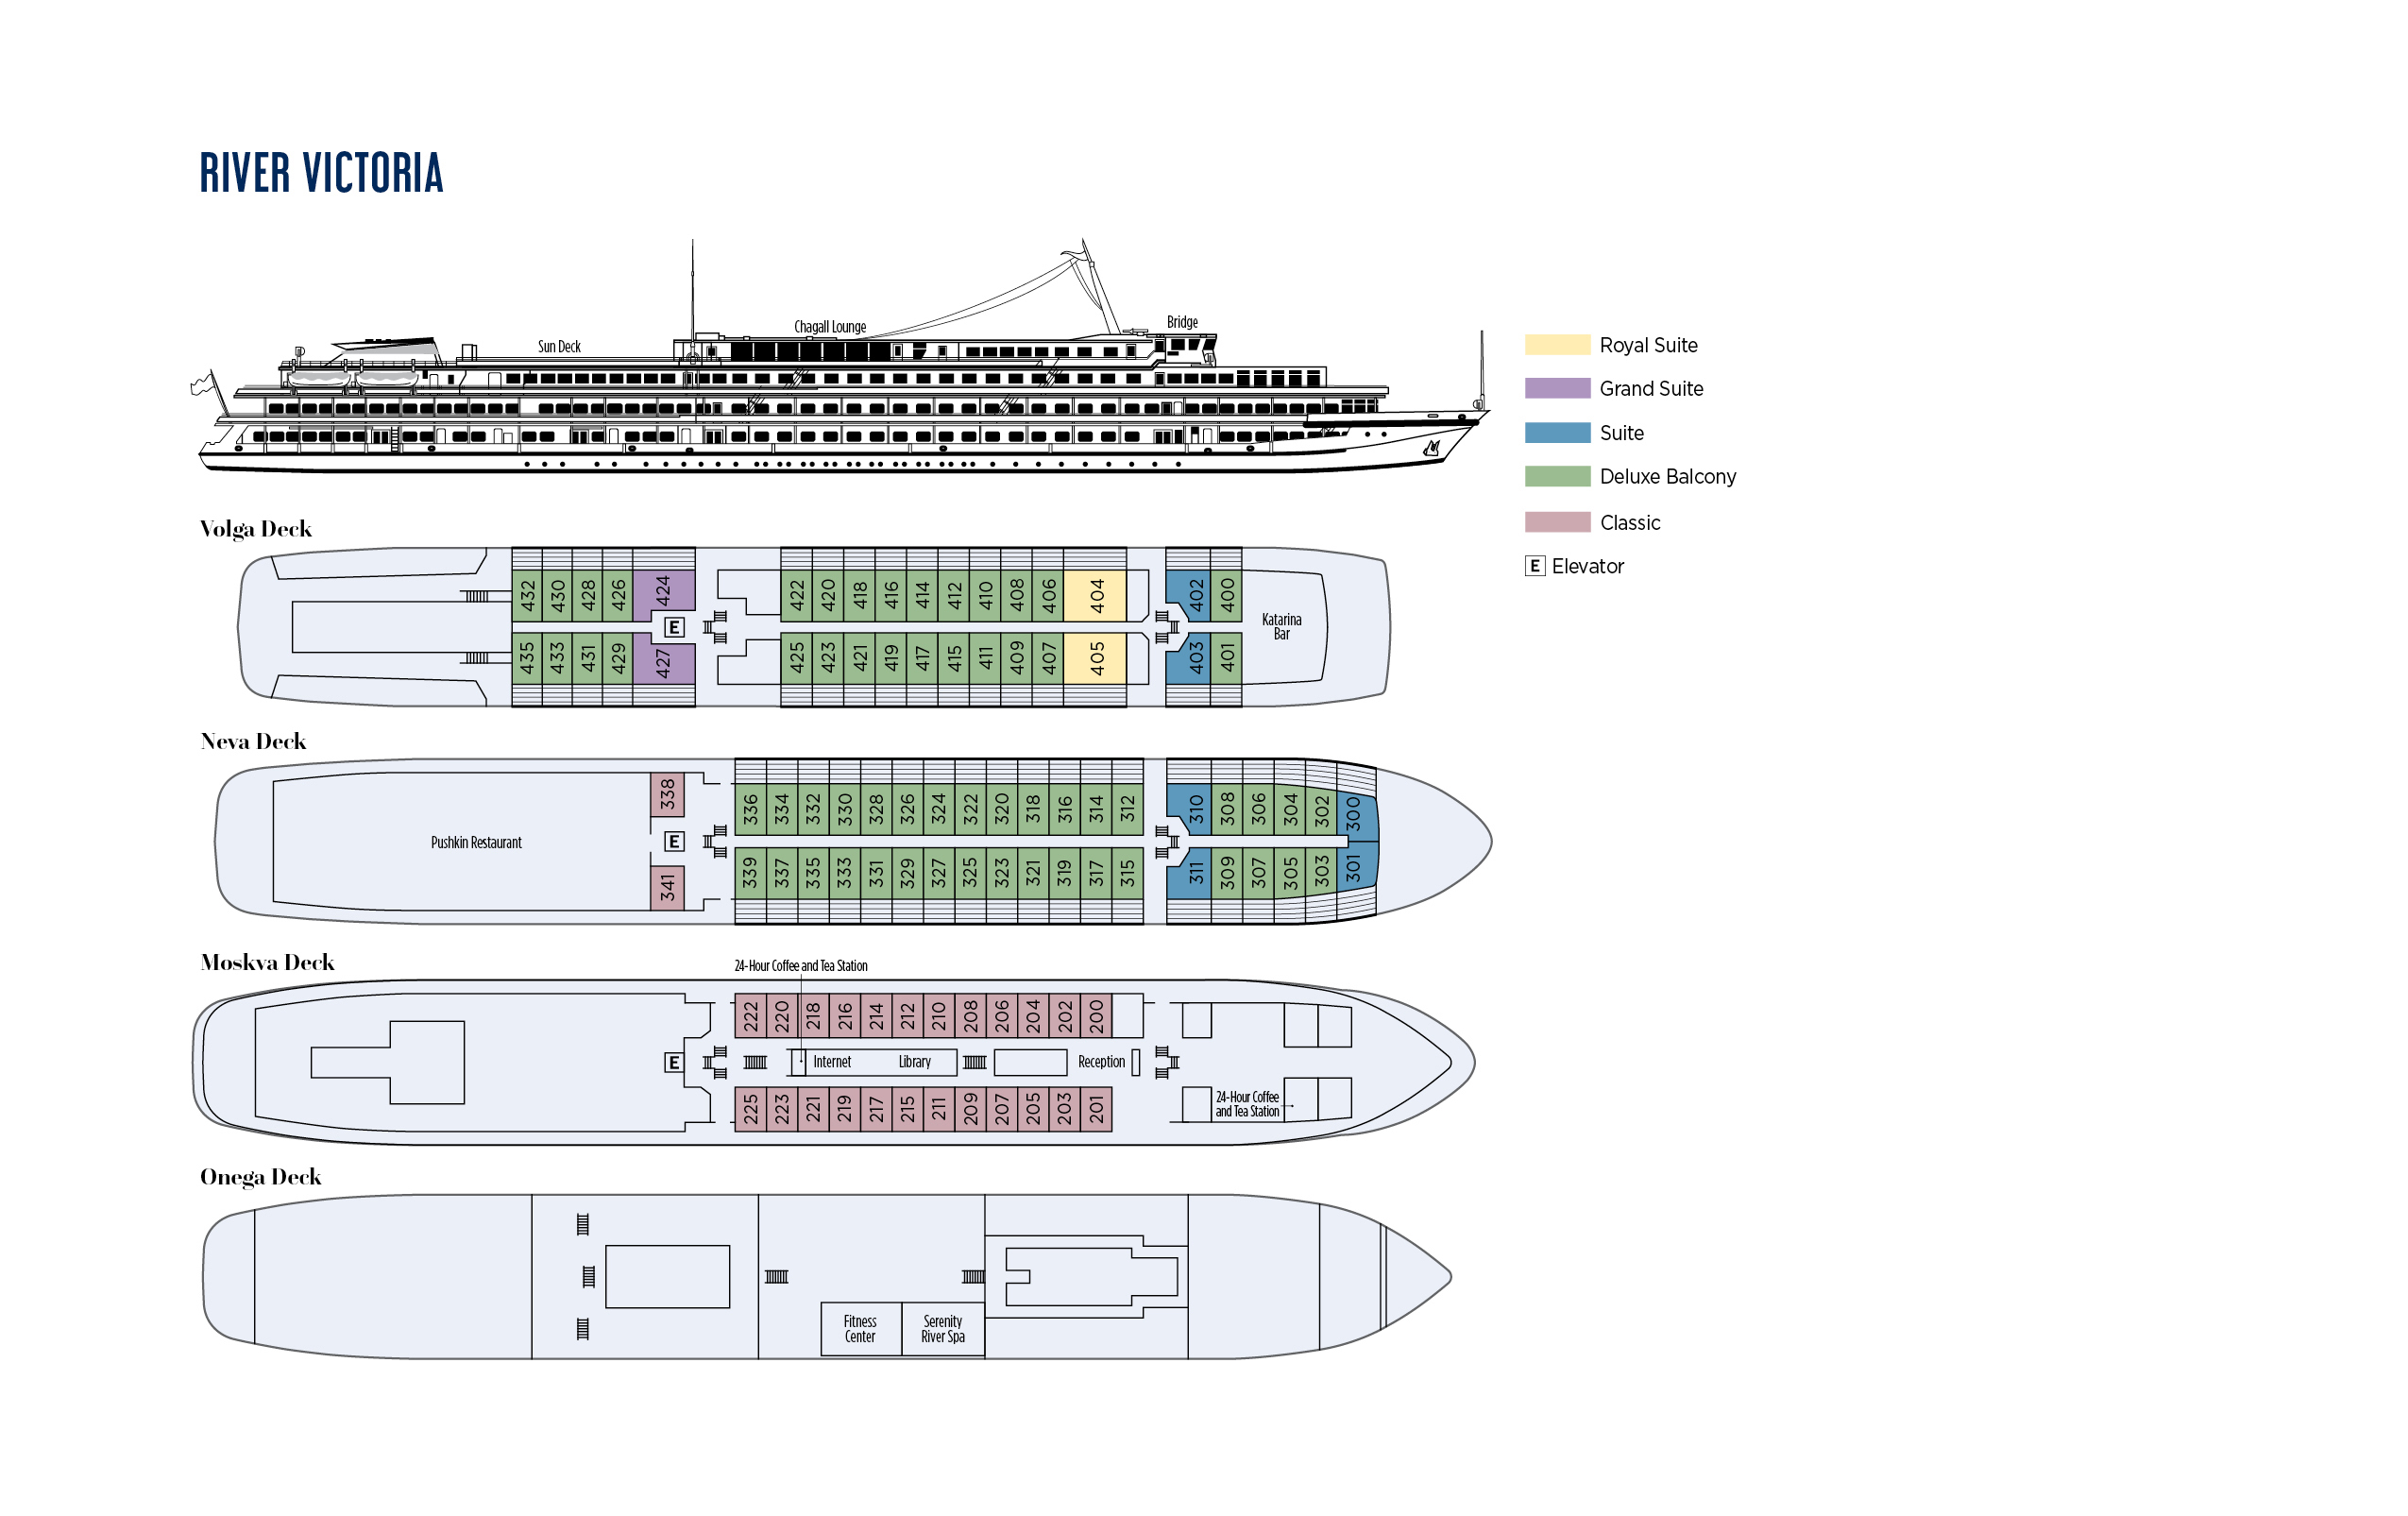 Deck plan (River Victoria)